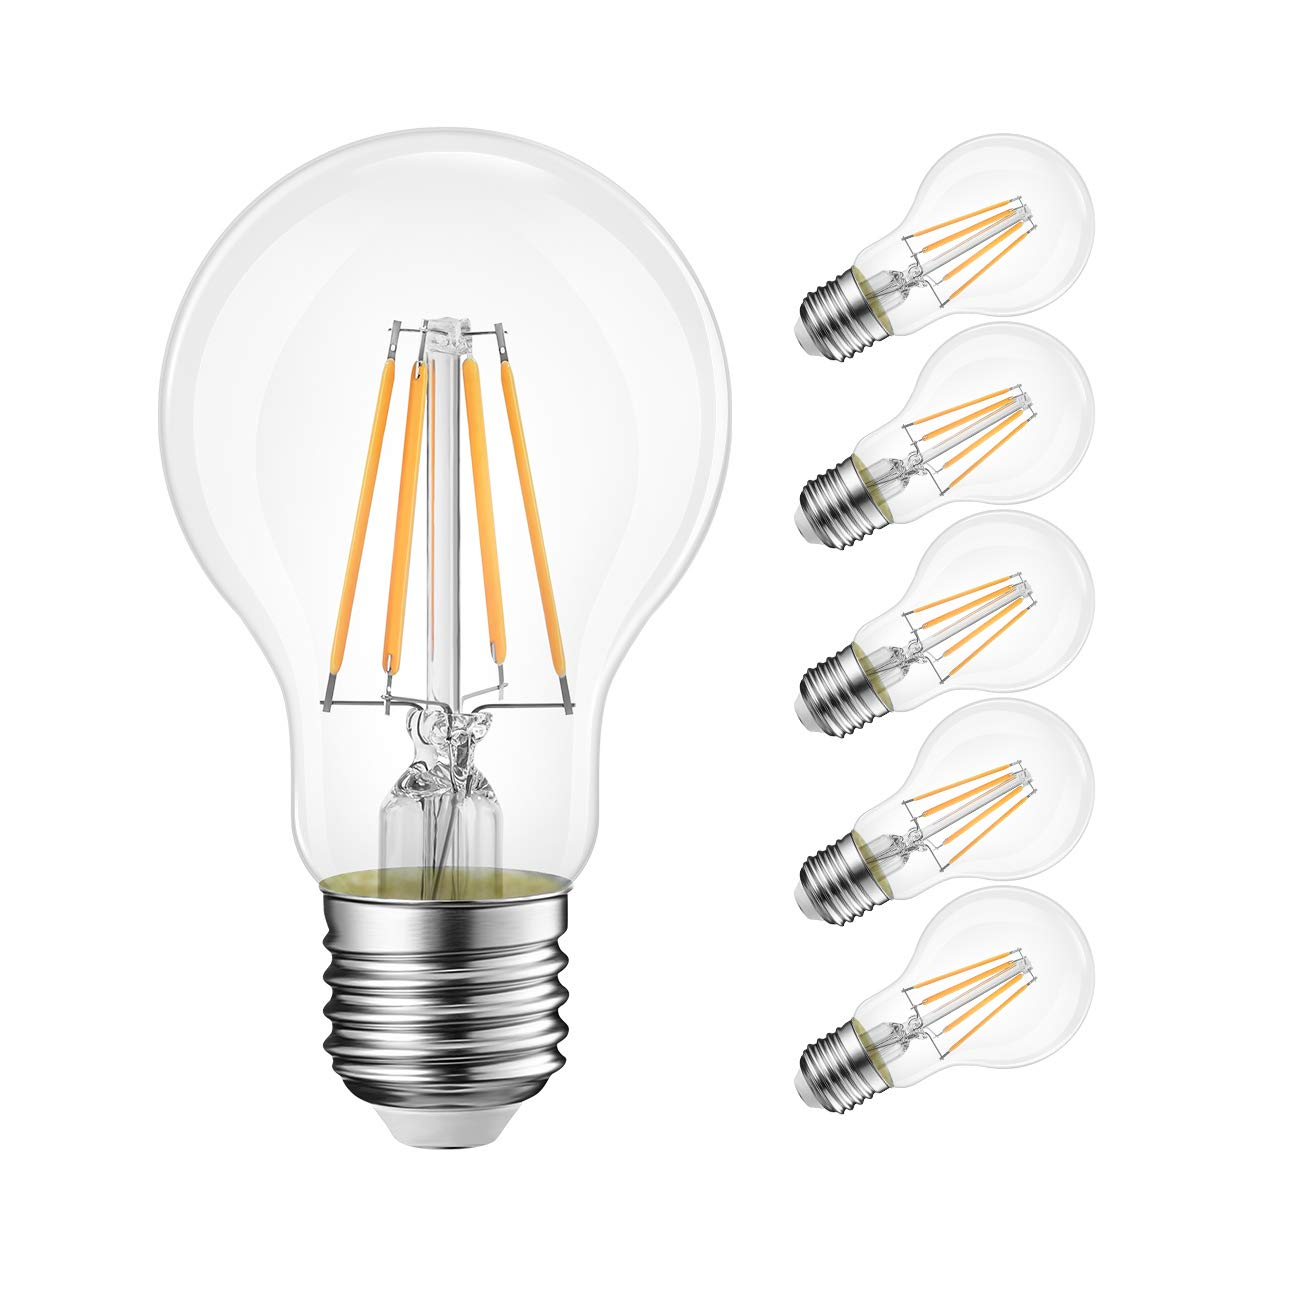 LVWIT A19 Vintage Edison LED Filament Bulb E26 Base, 4W (40W Equivalent), Soft White 3000K, 470 Lumens, Non-Dimmable, 3 Year Warranty, UL-Listed, Pack of 6